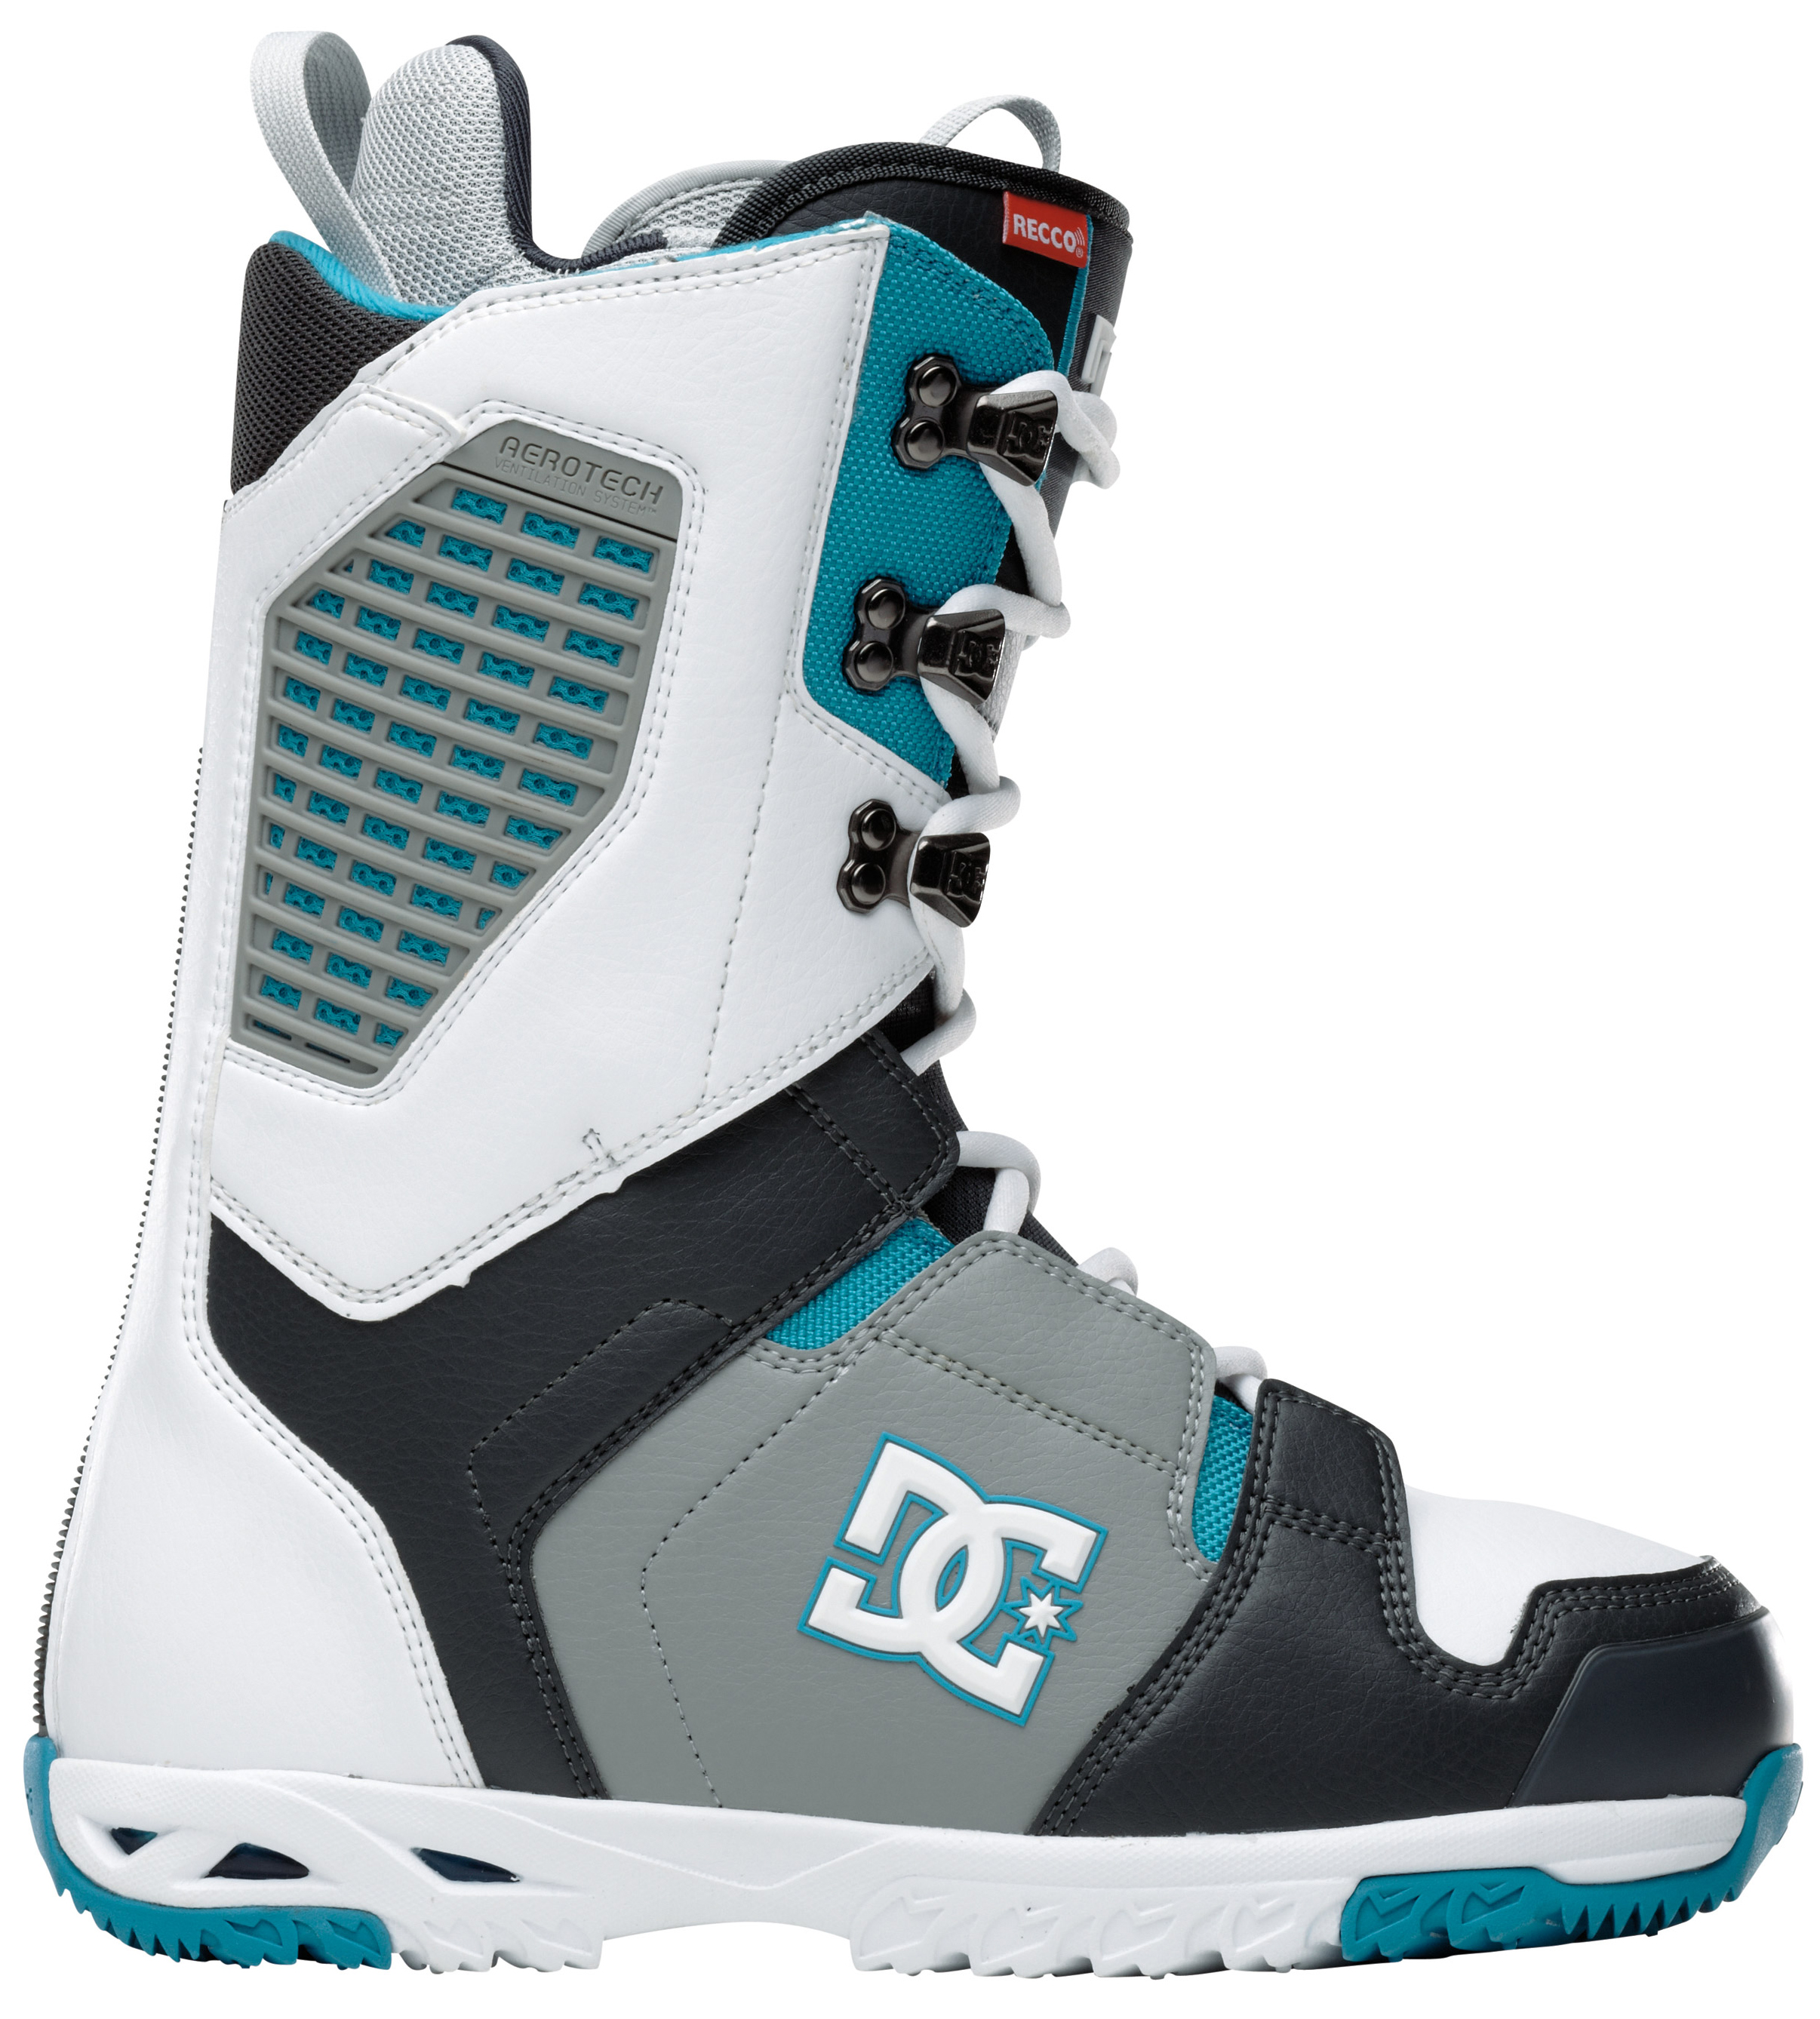 Snowboard The Ceptor is the most versatile lace boot on the planet. There are no gimmicks when it comes to this boot, just technical features to provide you with the best days of your life. It's the boot of choice for Devun Walsh and Lauri Heiskari.Key Features of the DC Ceptor Snowboard Boots: Direct power lacing Wraplock Aerotech 3D tongue Articulation Molded backstay Welded toe cap Internal ankle harness Unilite Impact G Alpha liner Flex rating: 8 - $161.95